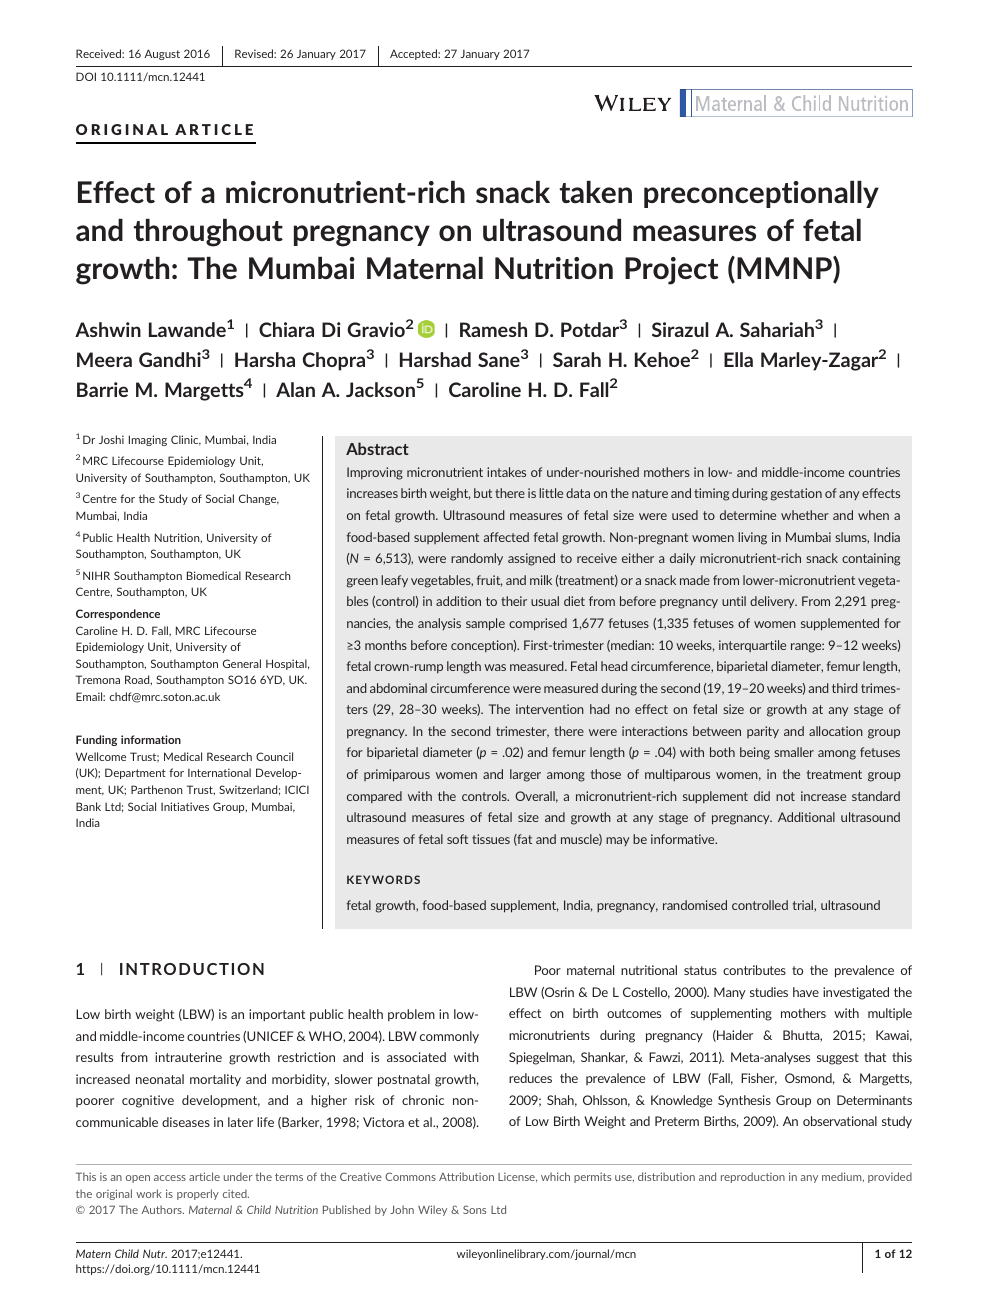 Effect of a micronutrient-rich snack taken preconceptionally